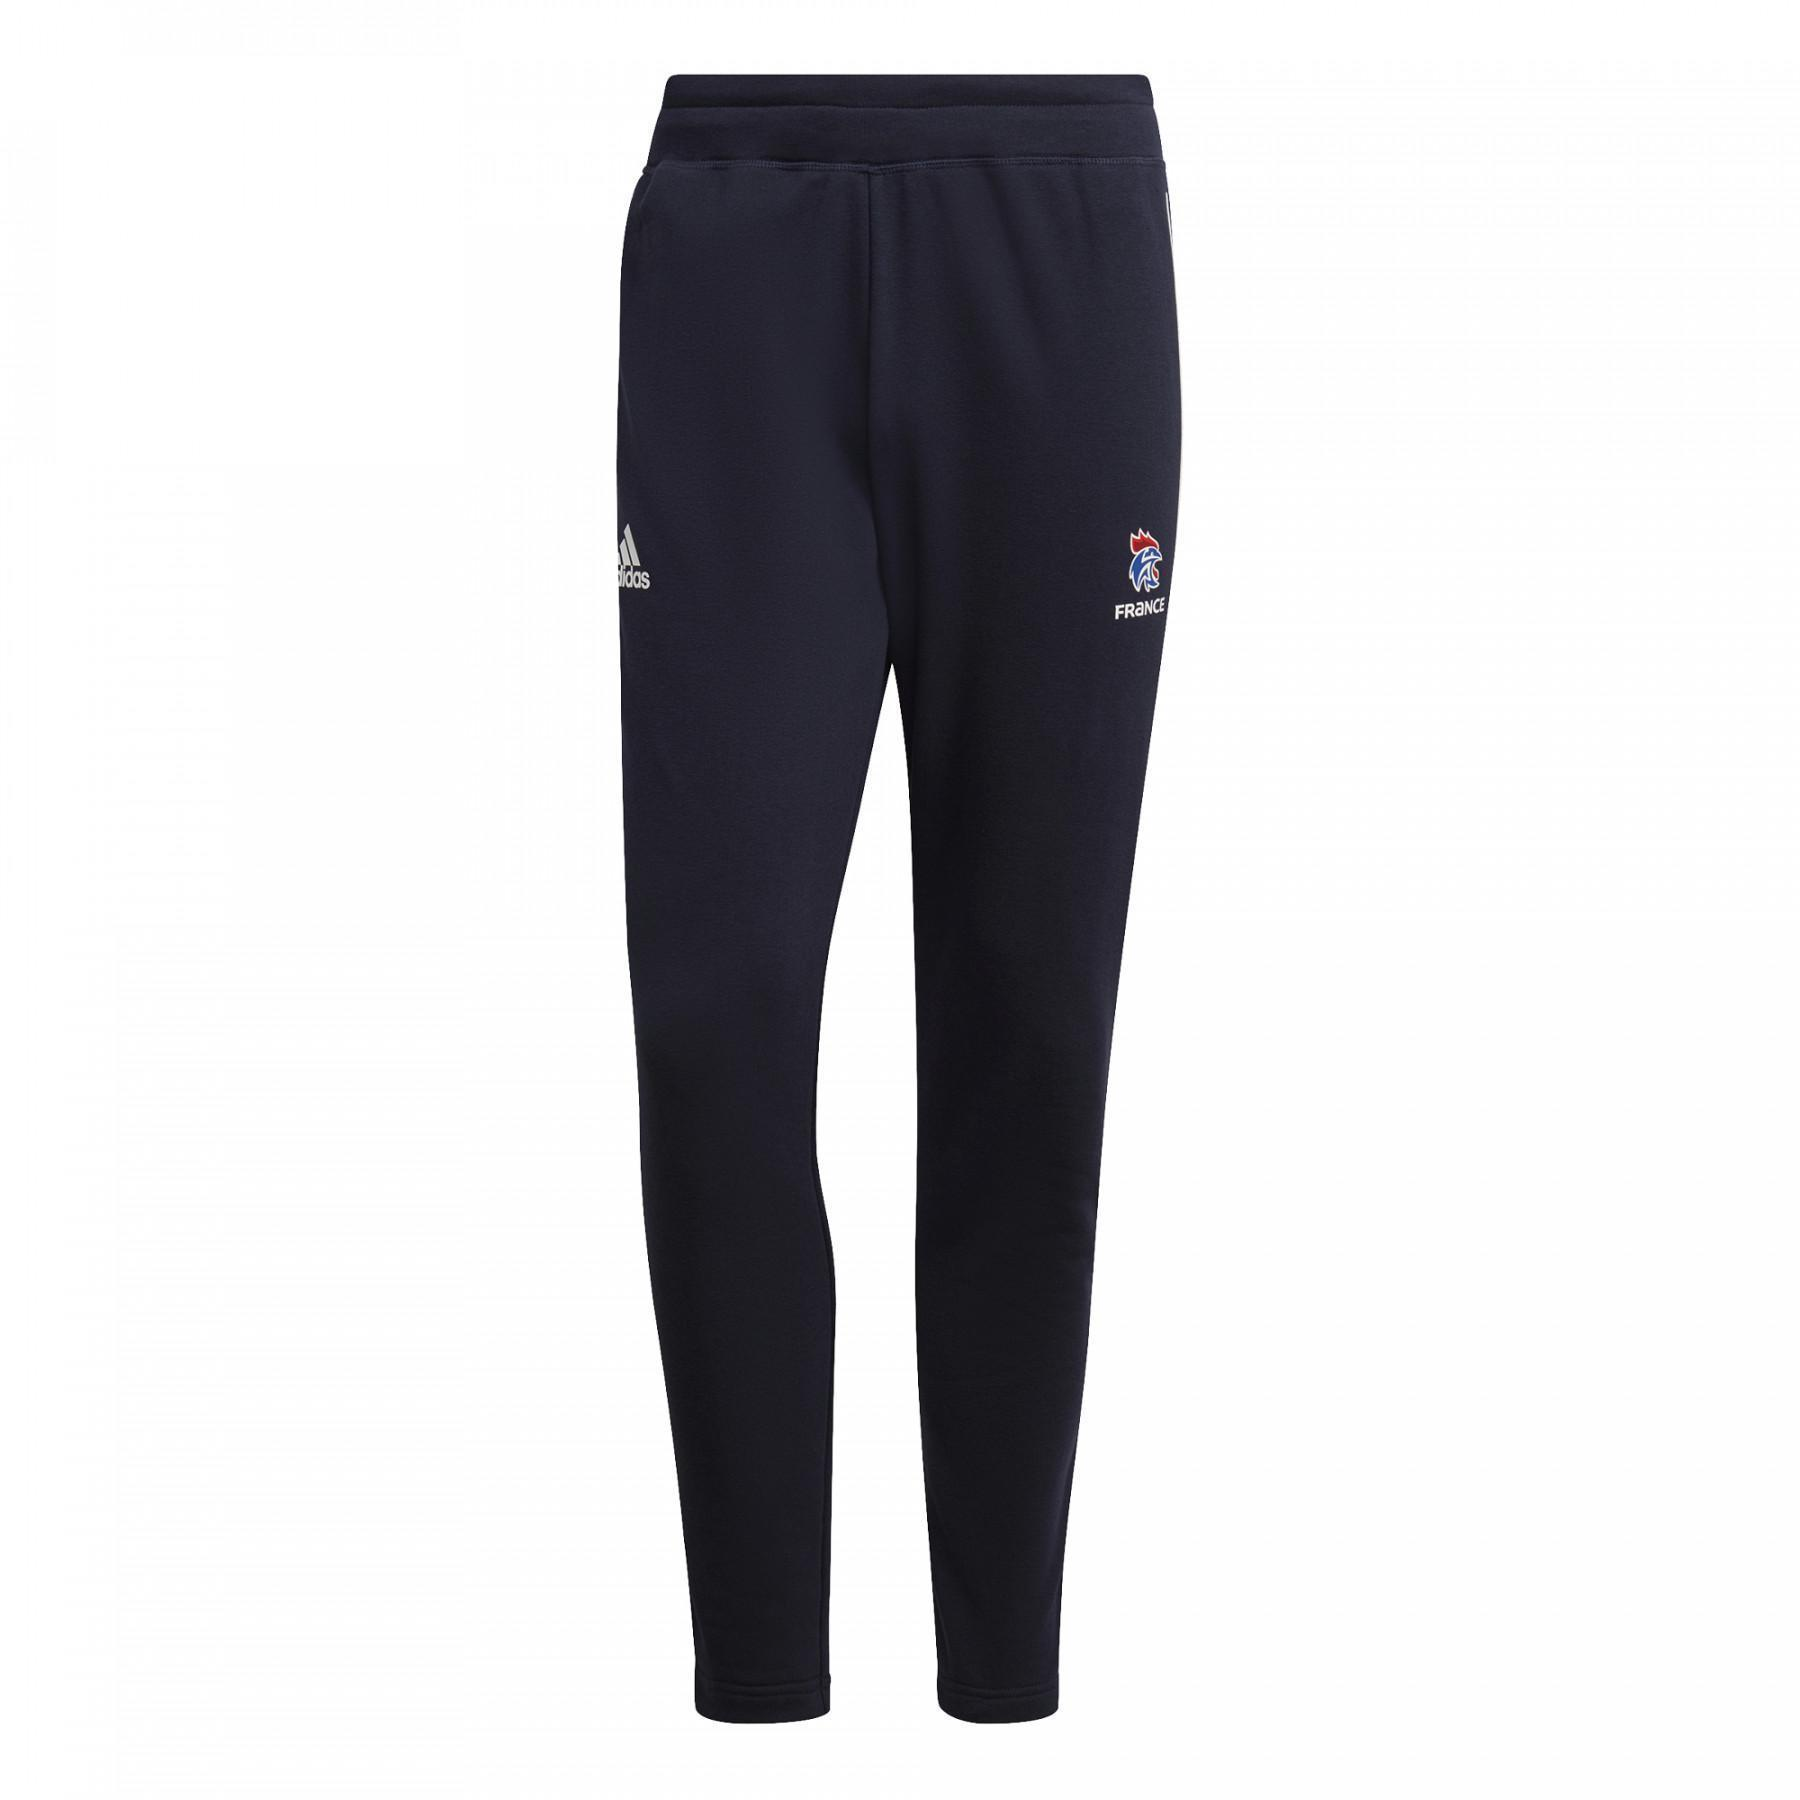 French Team Training Pants